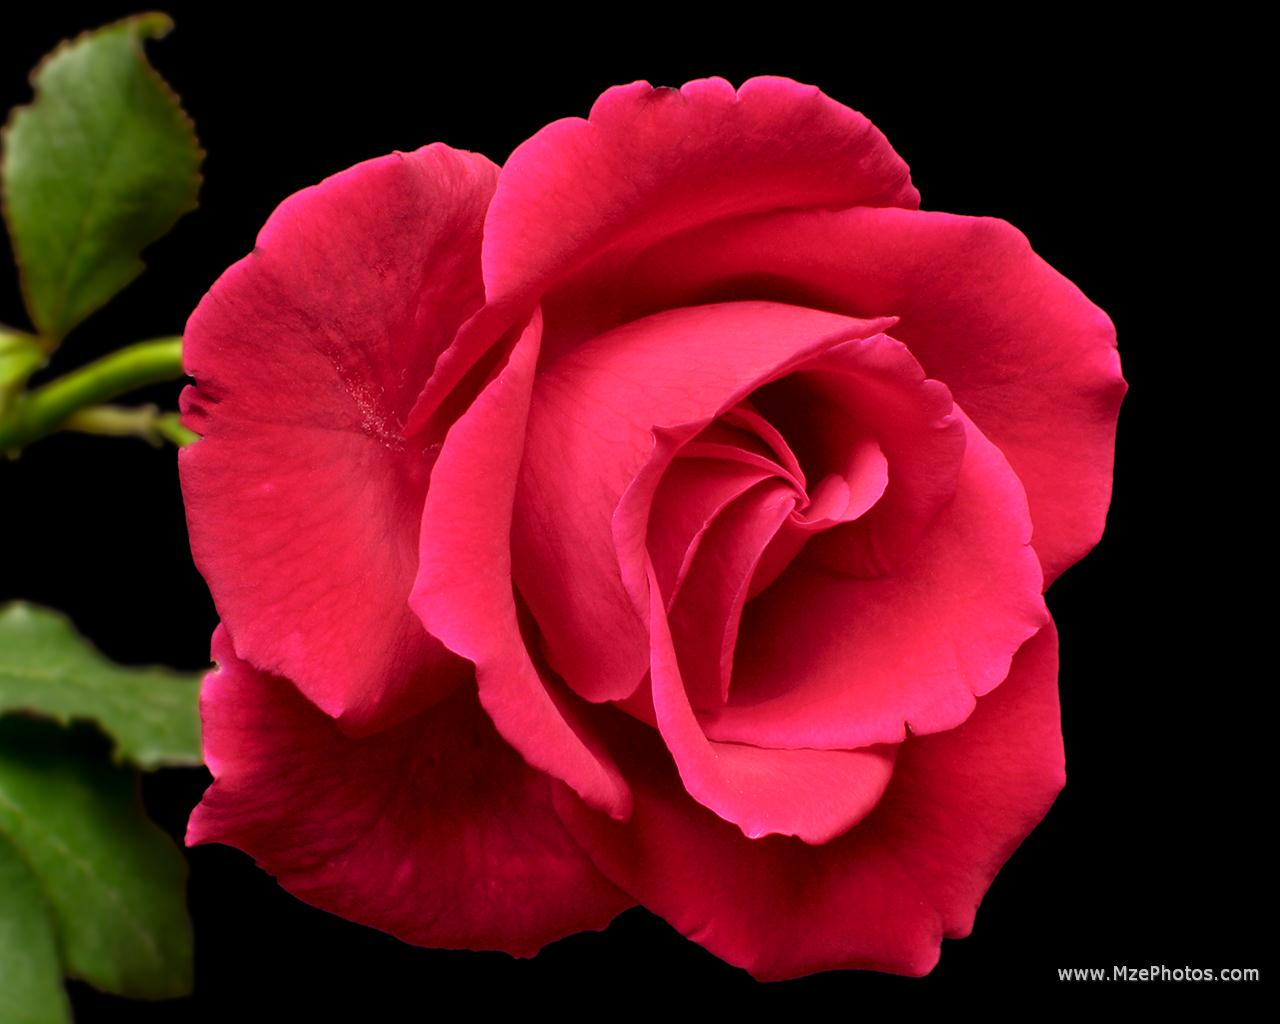 Flower wallpapers flower pictures red rose flowers Beautiful flowers photos